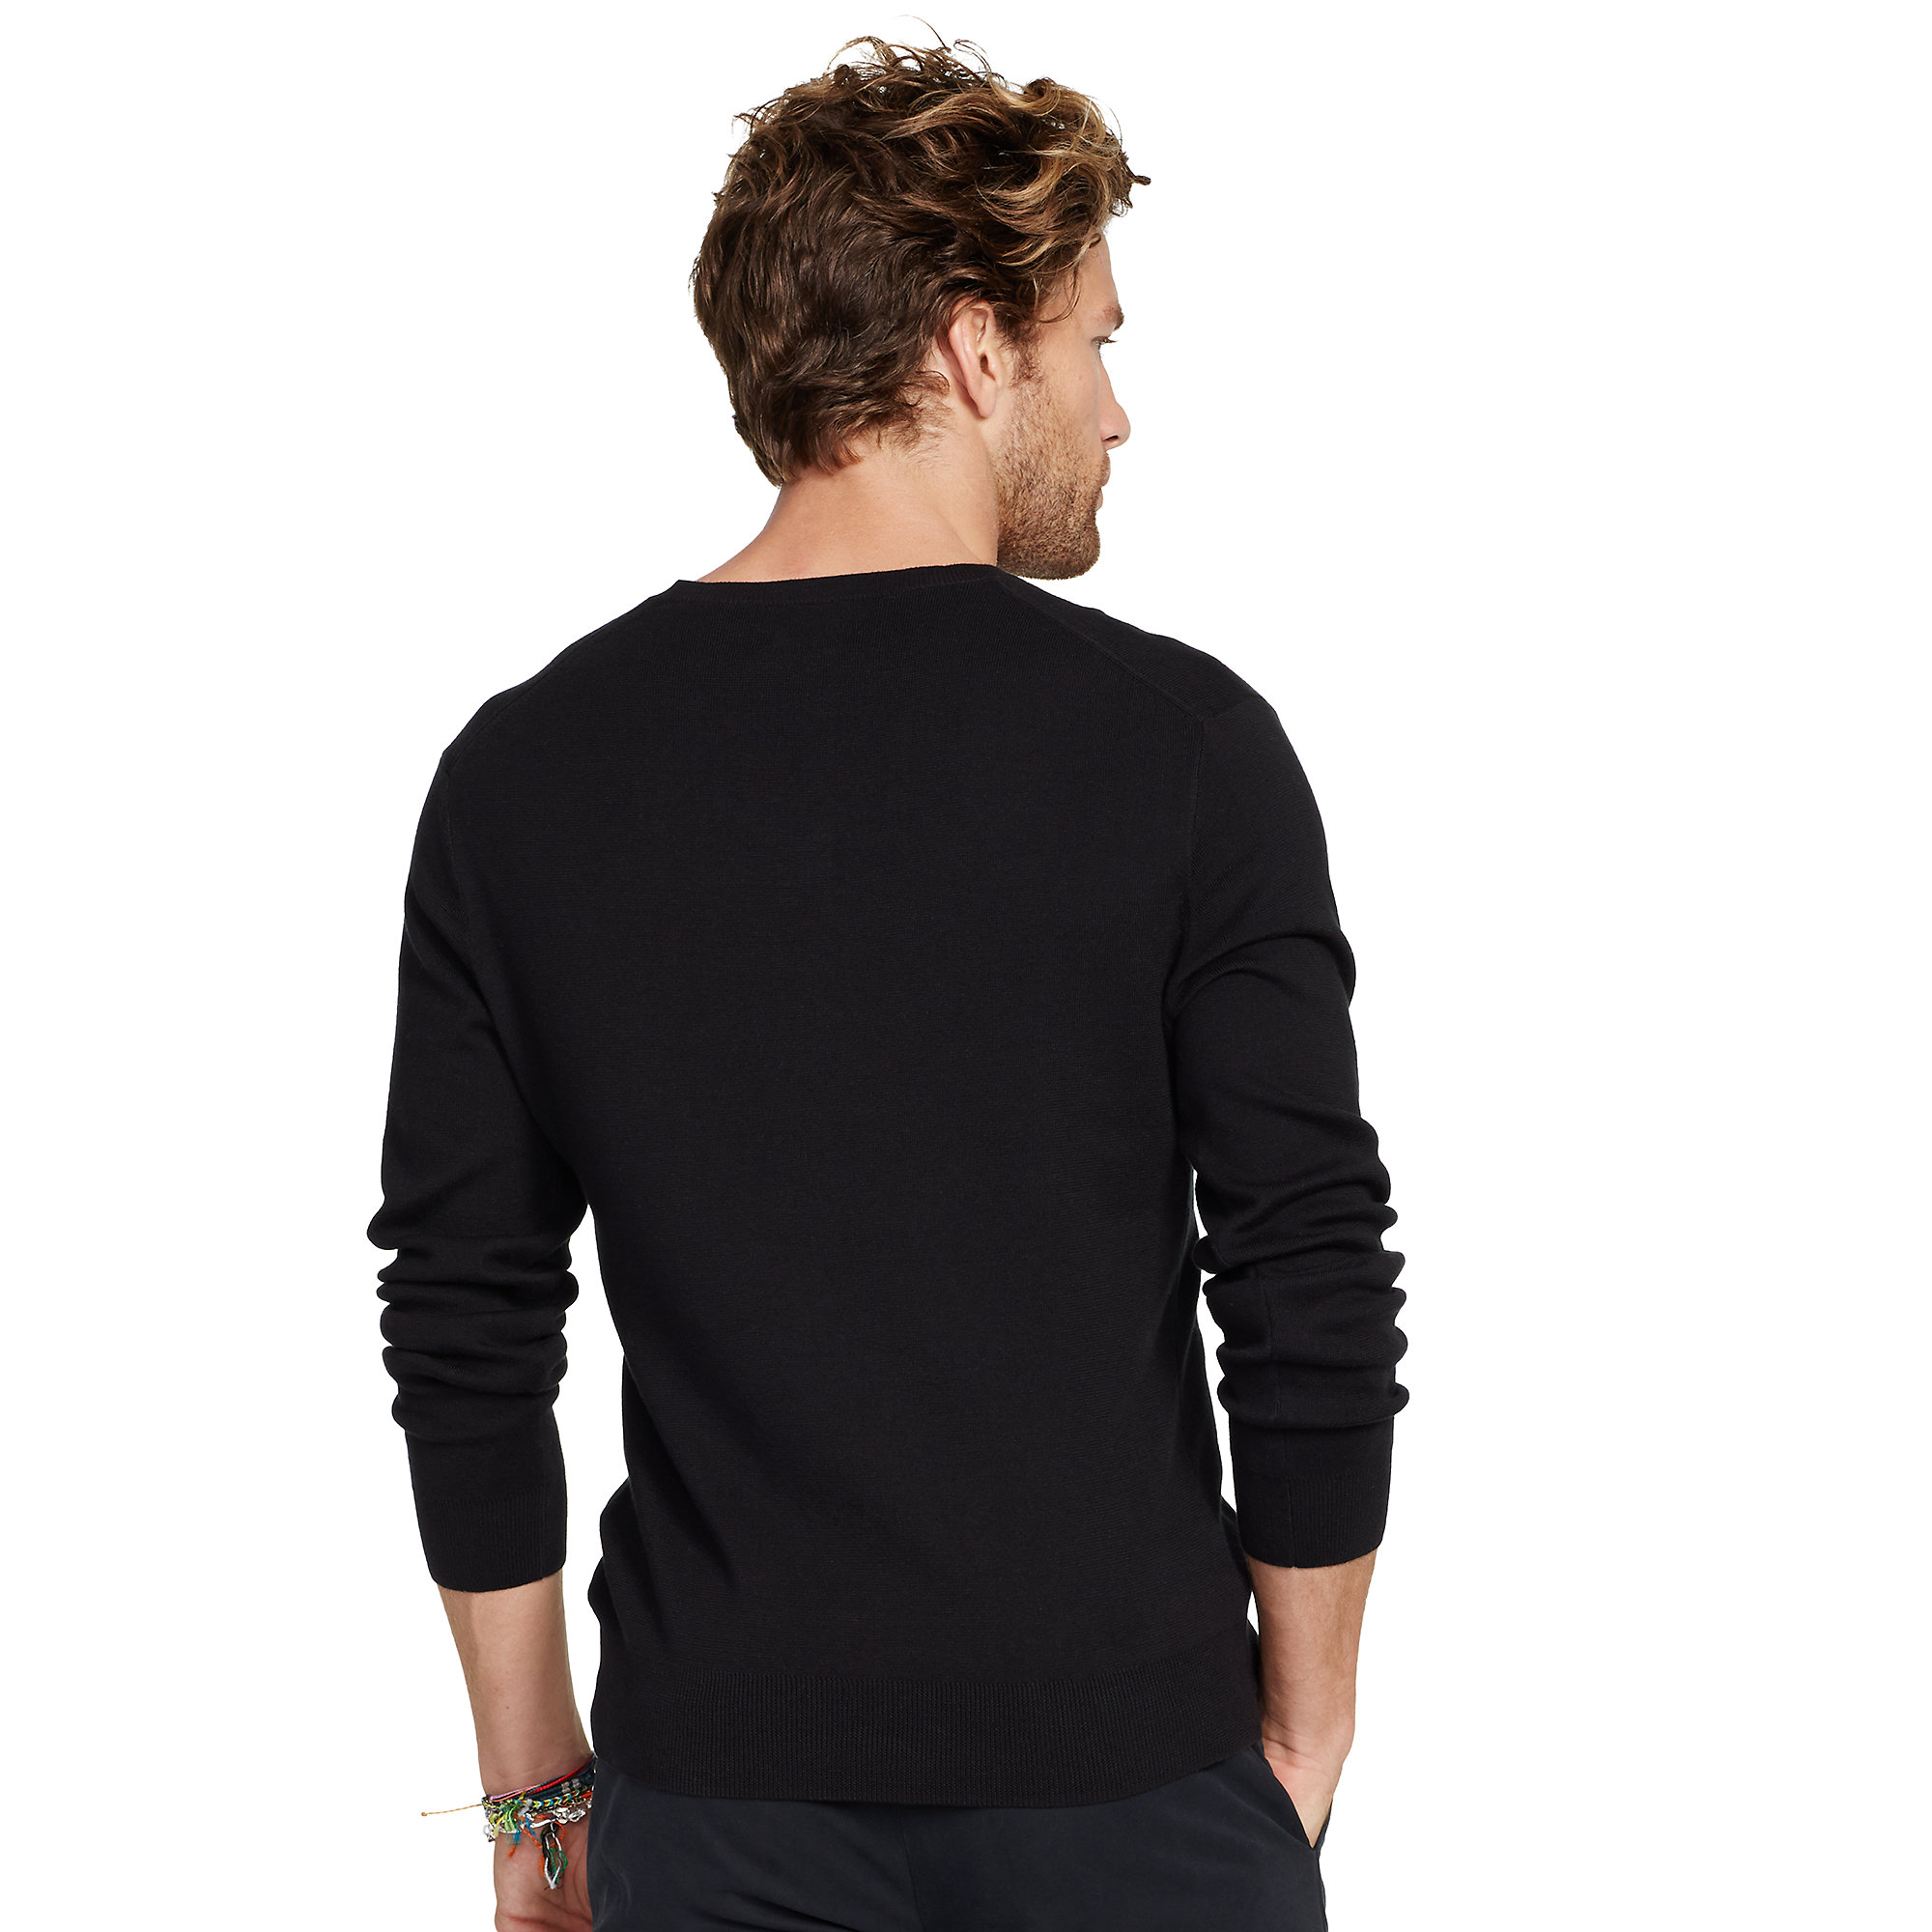 polo ralph lauren slim fit v neck sweater in black for men lyst. Black Bedroom Furniture Sets. Home Design Ideas